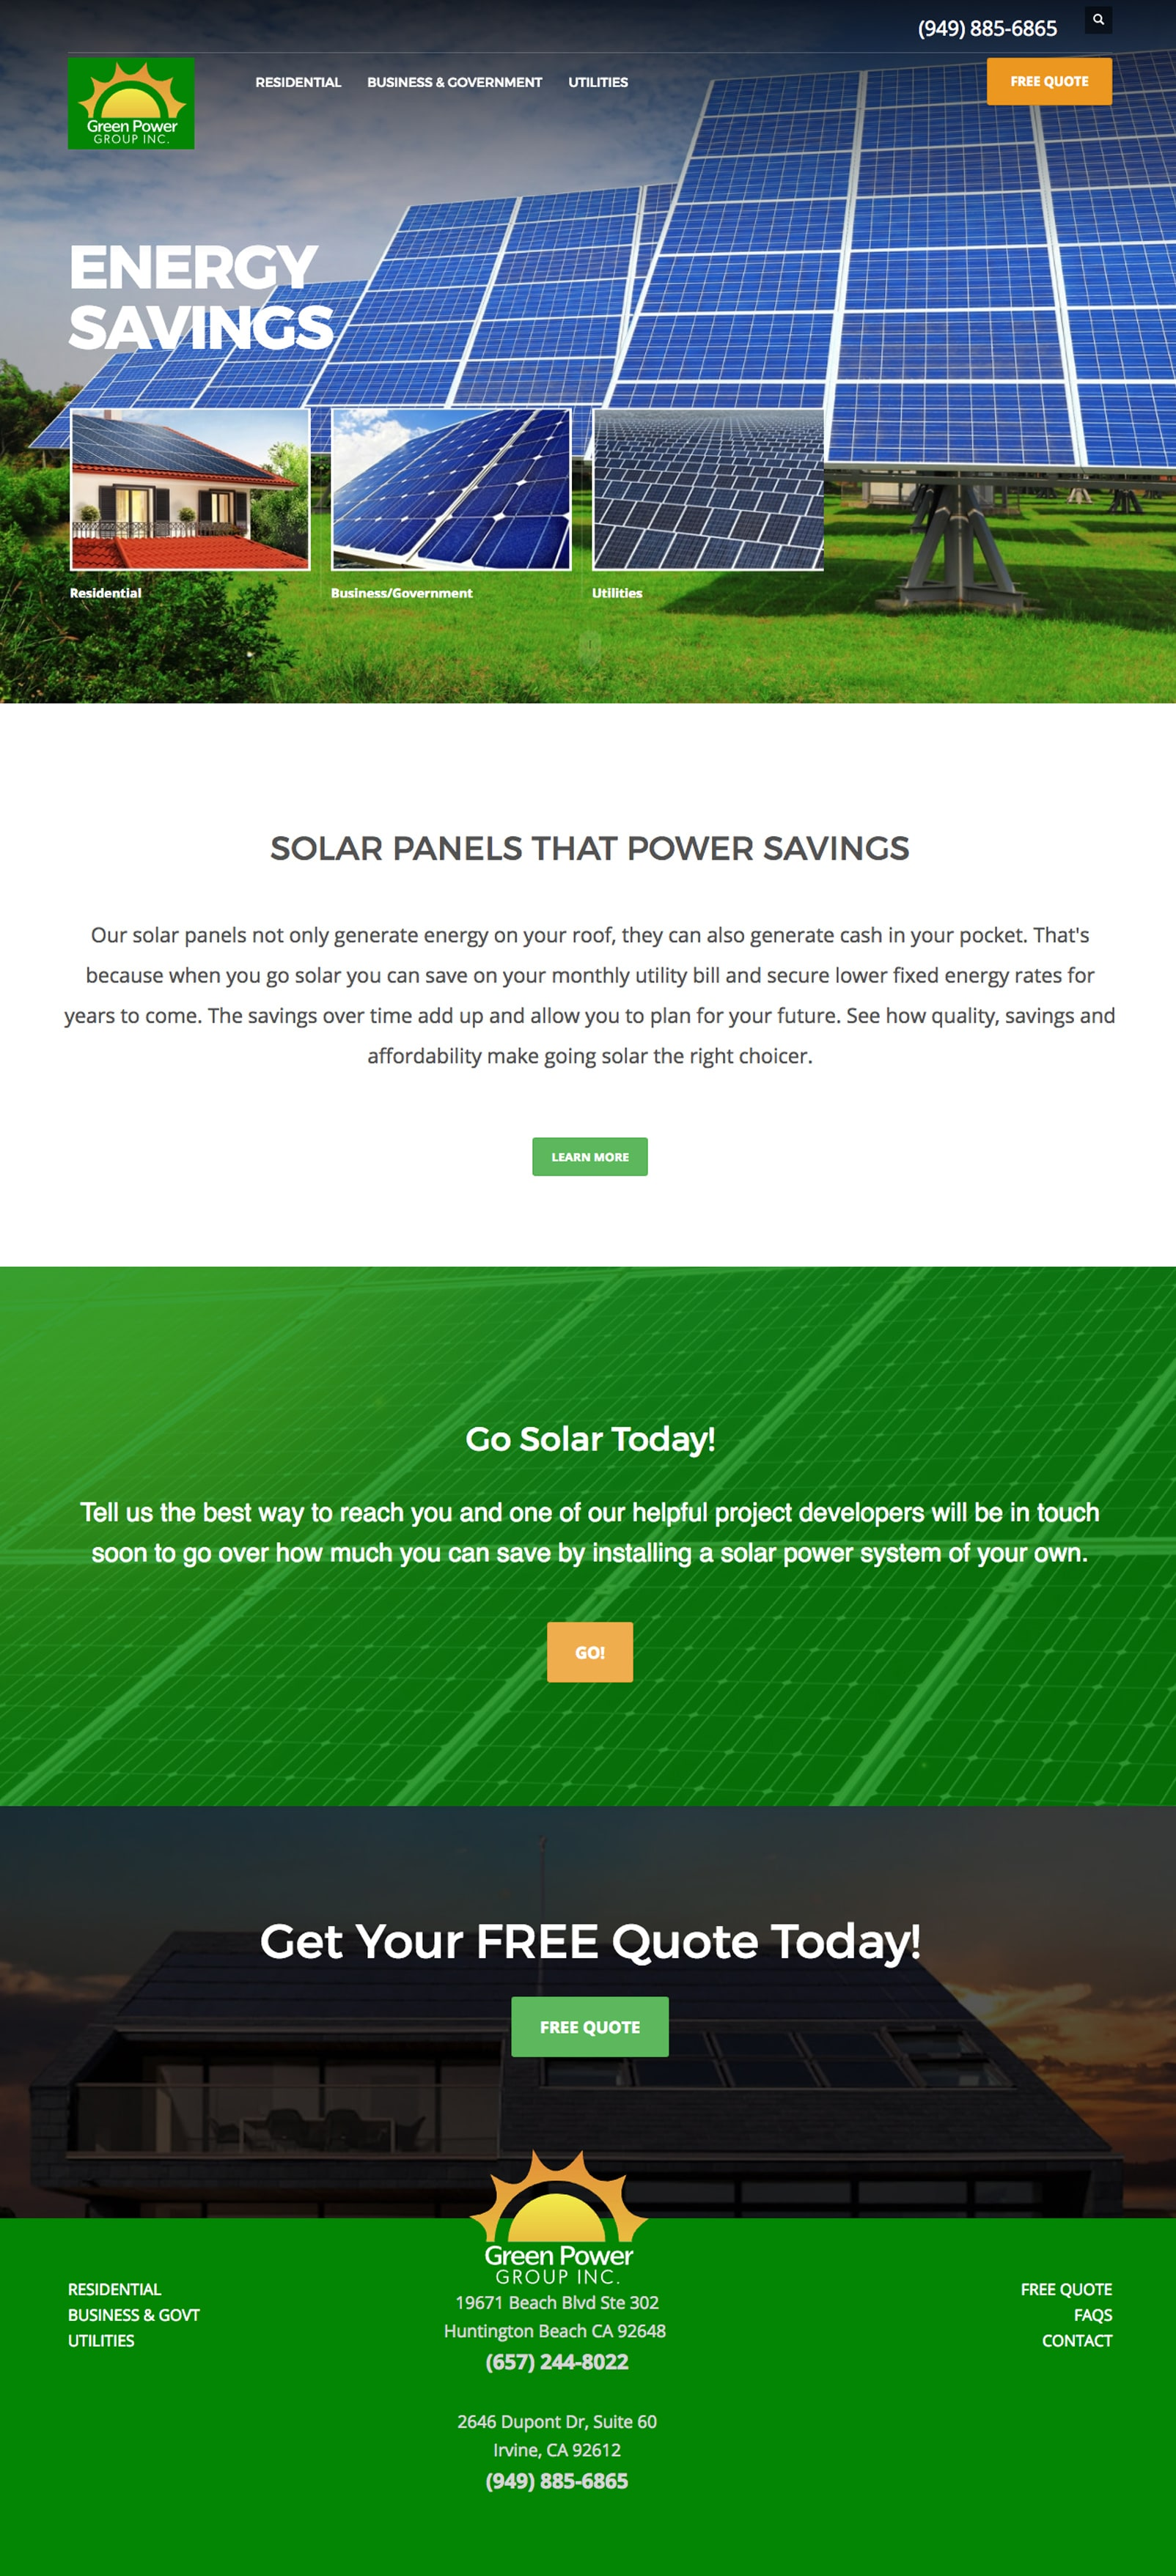 Green Power Group home page